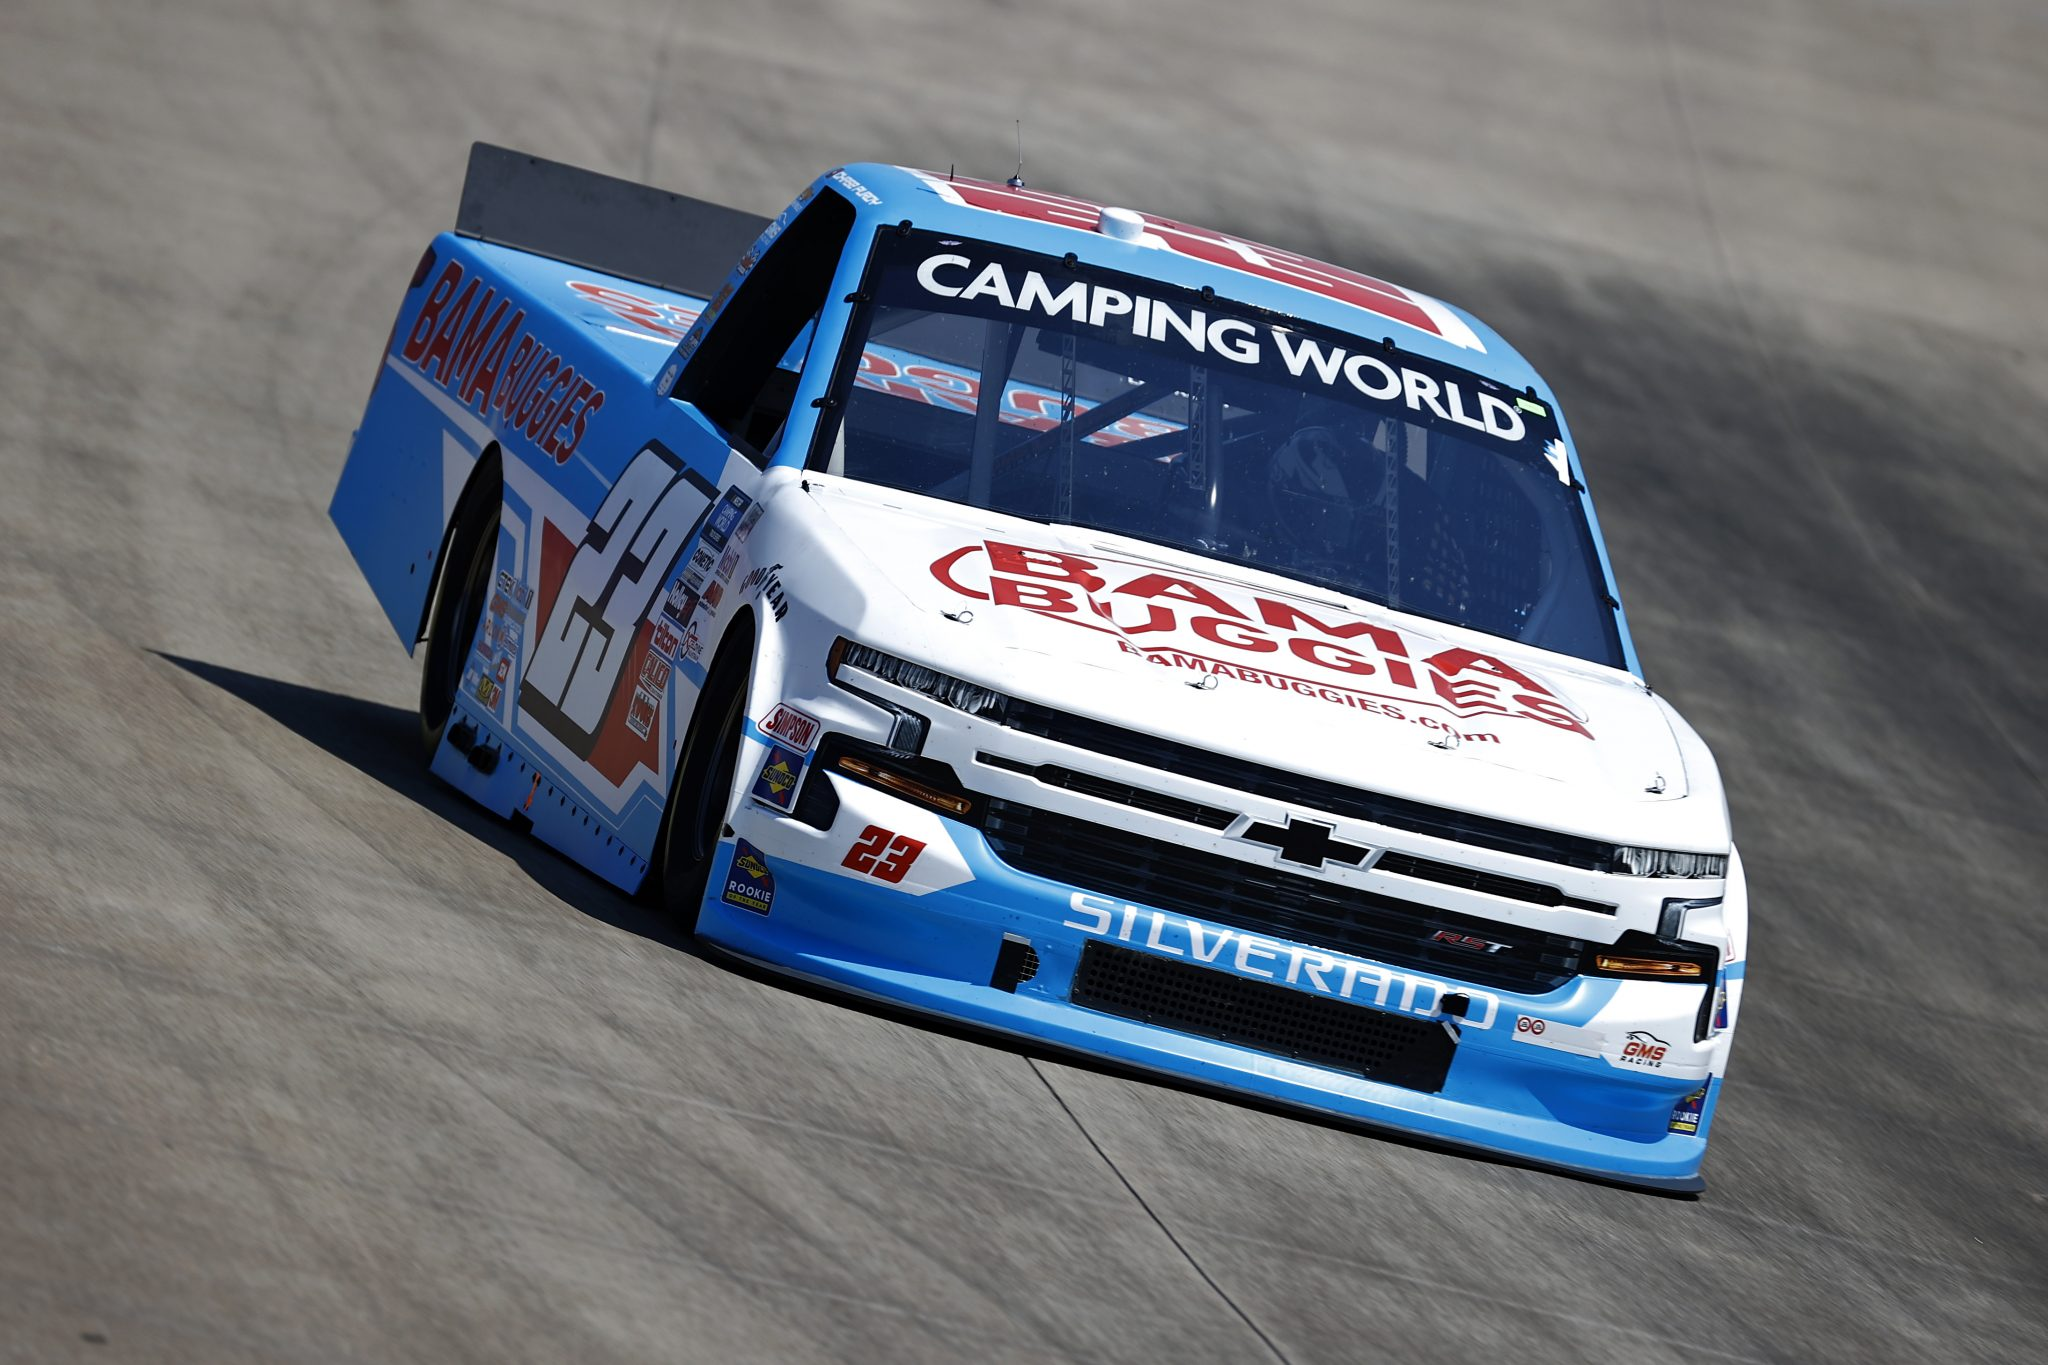 LEBANON, TENNESSEE - JUNE 18: Chase Purdy, driver of the #23 BamaBuggies.com Chevrolet, drives during practice for the NASCAR Camping World Truck Series Rackley Roofing 200 at Nashville Superspeedway on June 18, 2021 in Lebanon, Tennessee. (Photo by Jared C. Tilton/Getty Images) | Getty Images